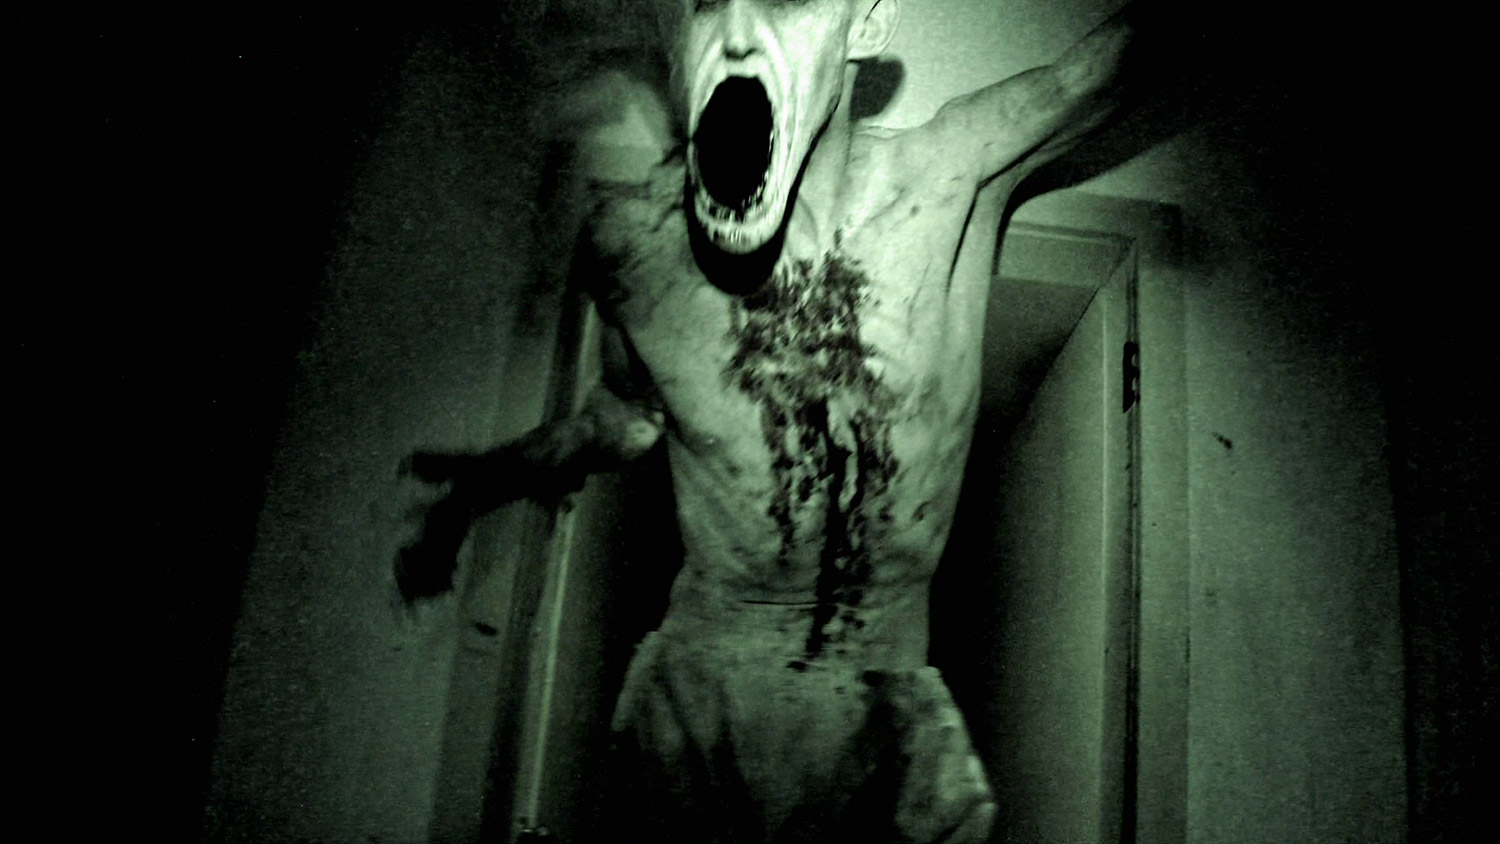 Canadian Horror Films - Grave Encounters, ghost